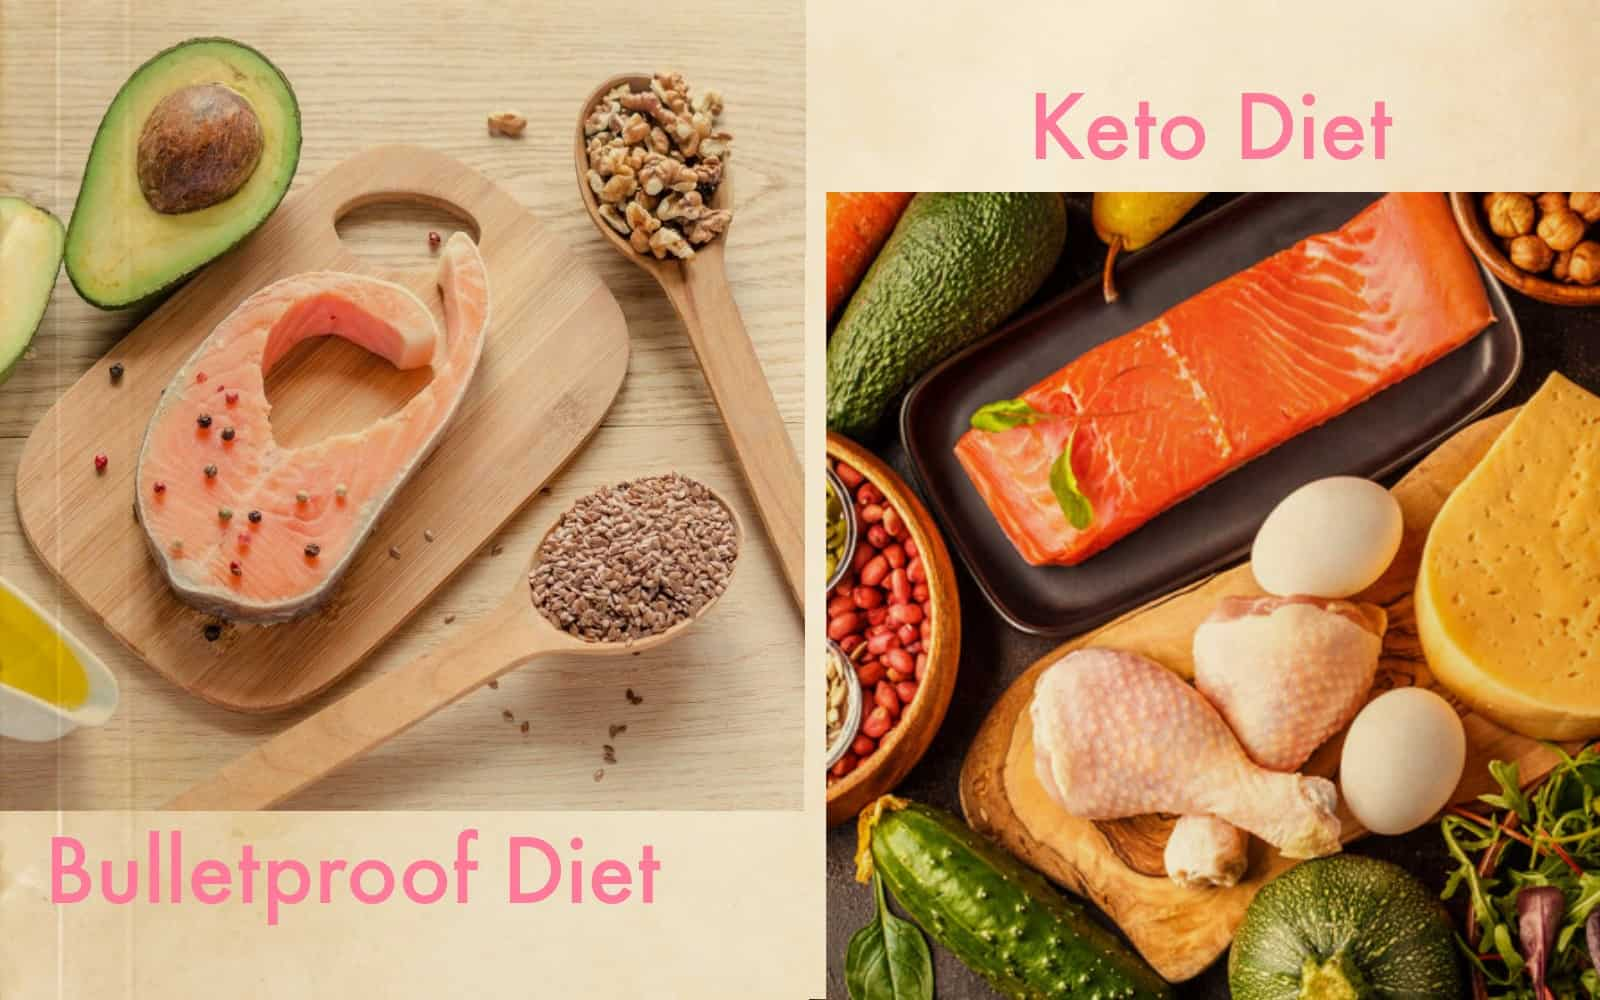 bulletproof vs Keto diet